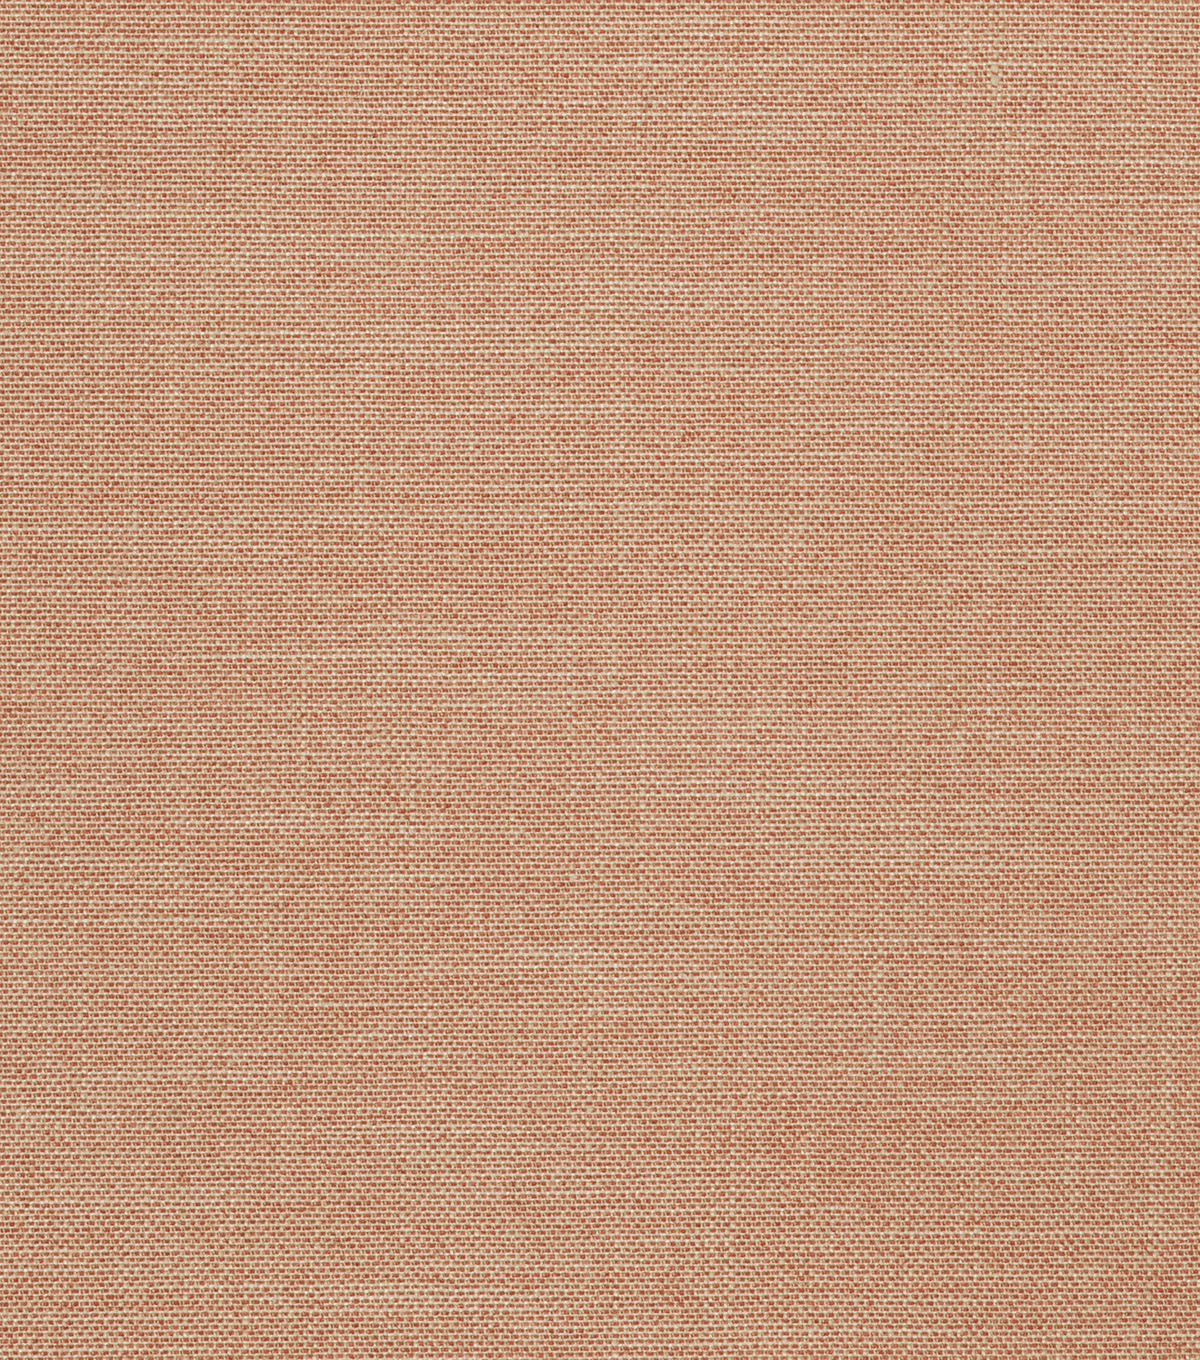 Eaton Square Upholstery Fabric-Alva Rot Persimmon